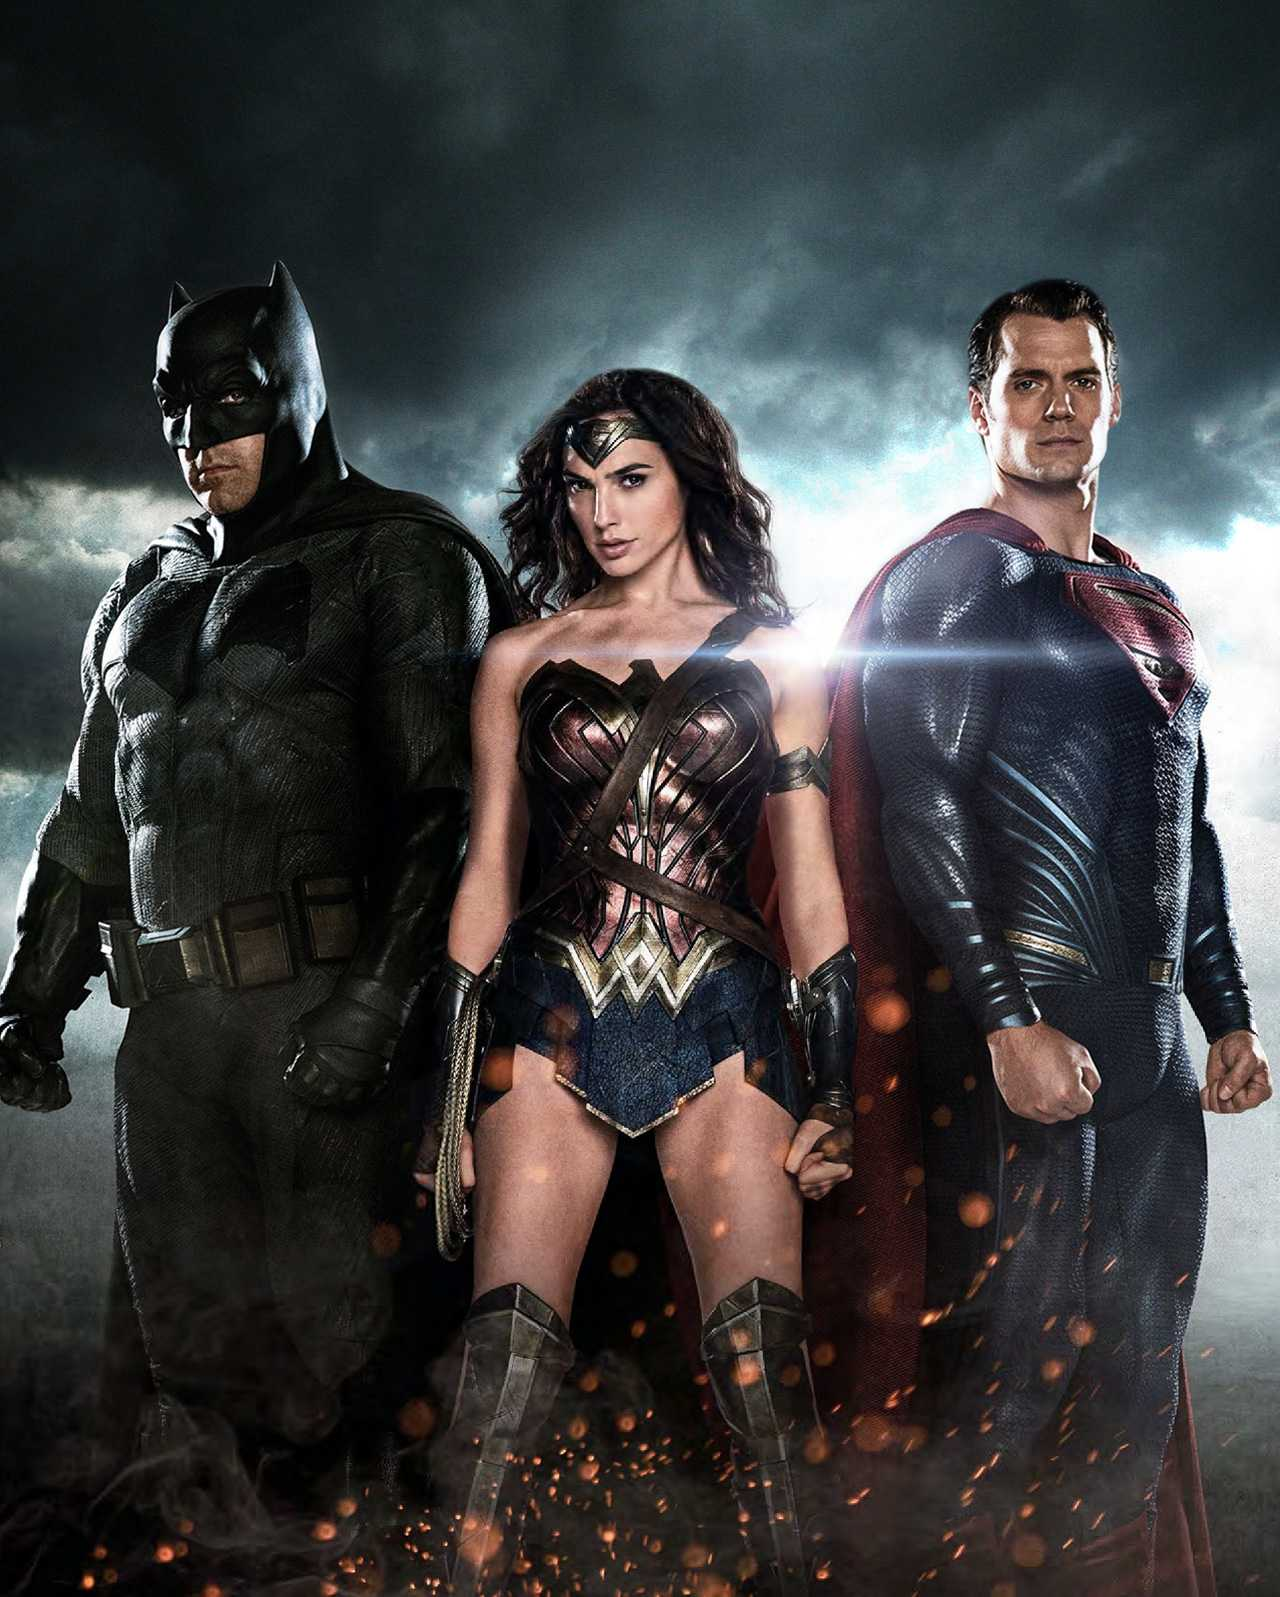 Batman v Superman Gets All-New Character Posters | Batman v Superman